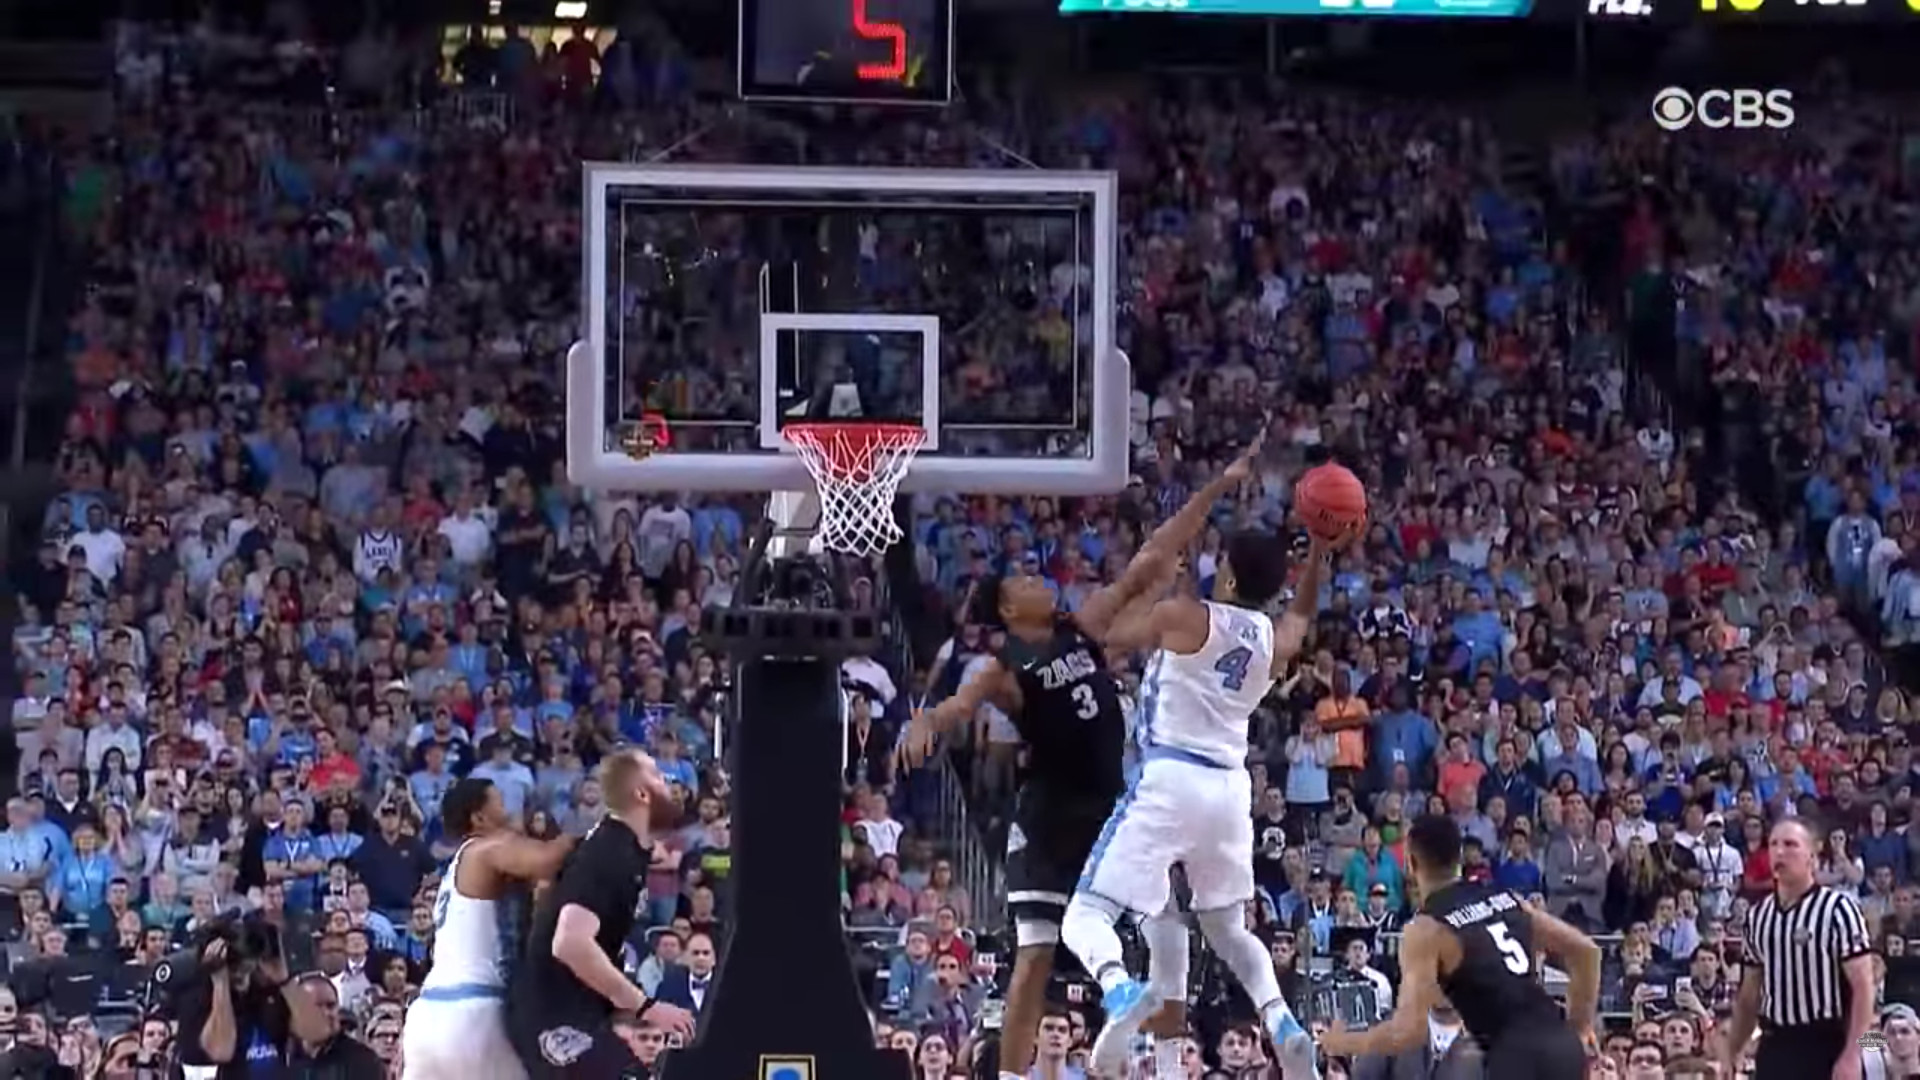 1920x1080 Recap March Madness 2017 with Highlights featuring the North Carolina Tar  Heels